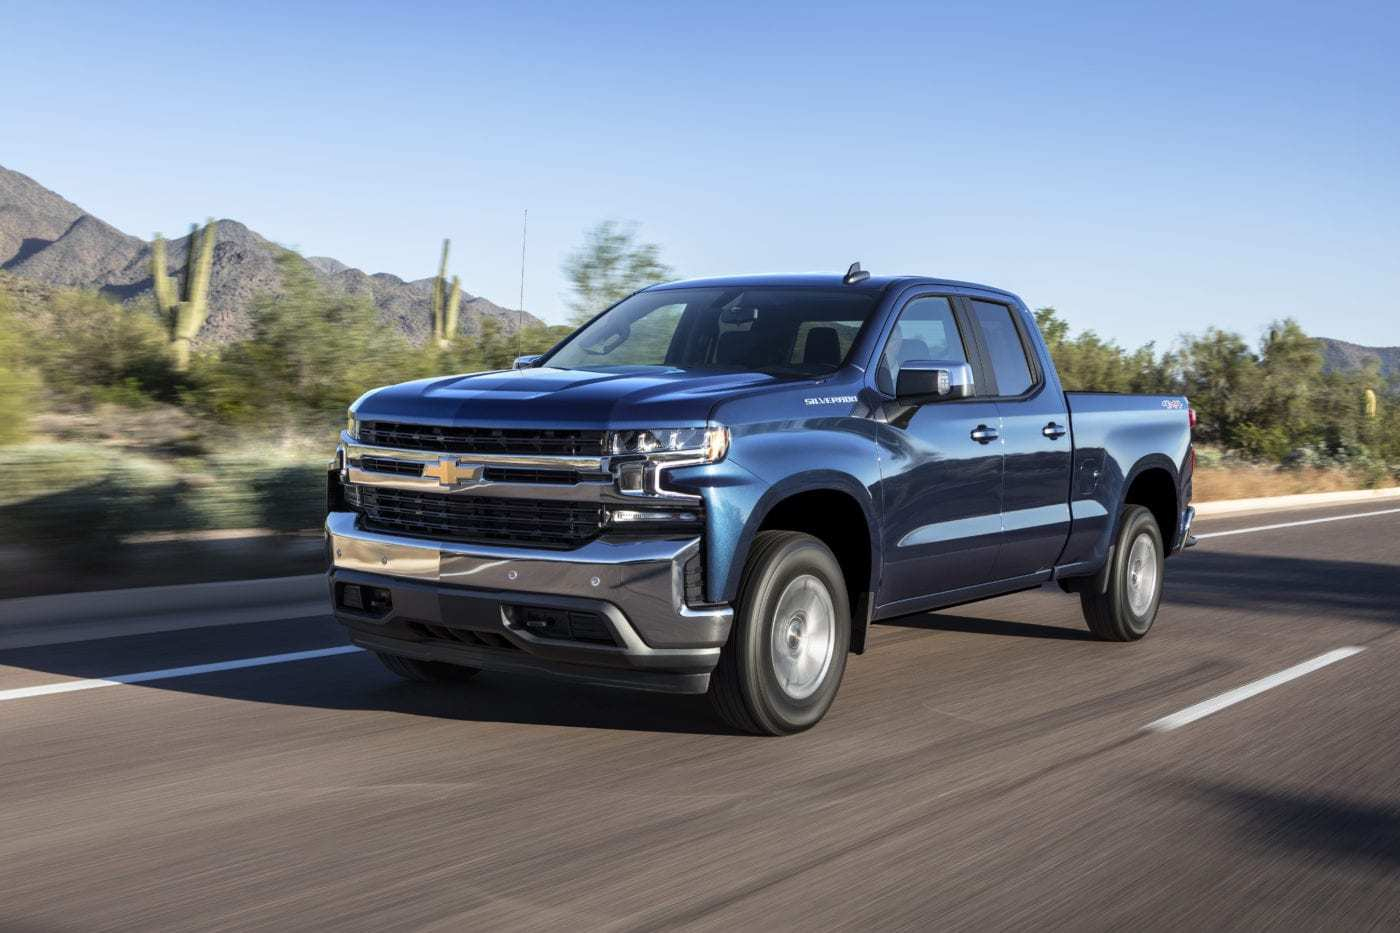 72 Best Chevrolet Silverado Ss 2020 Price